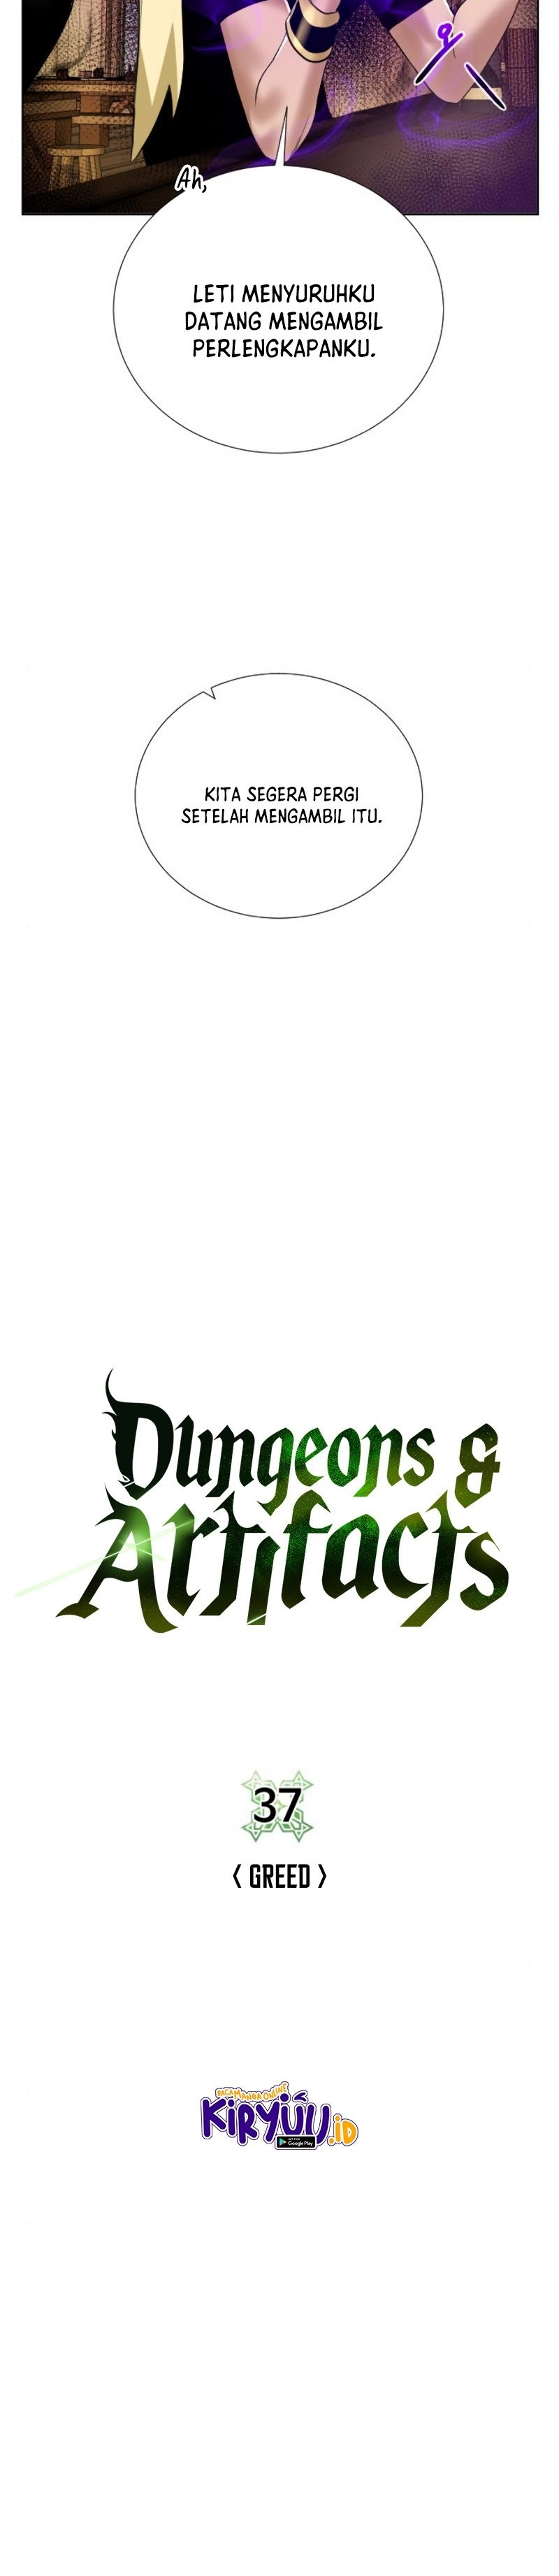 Dungeons & Artifacts: Chapter 37 - Page 6